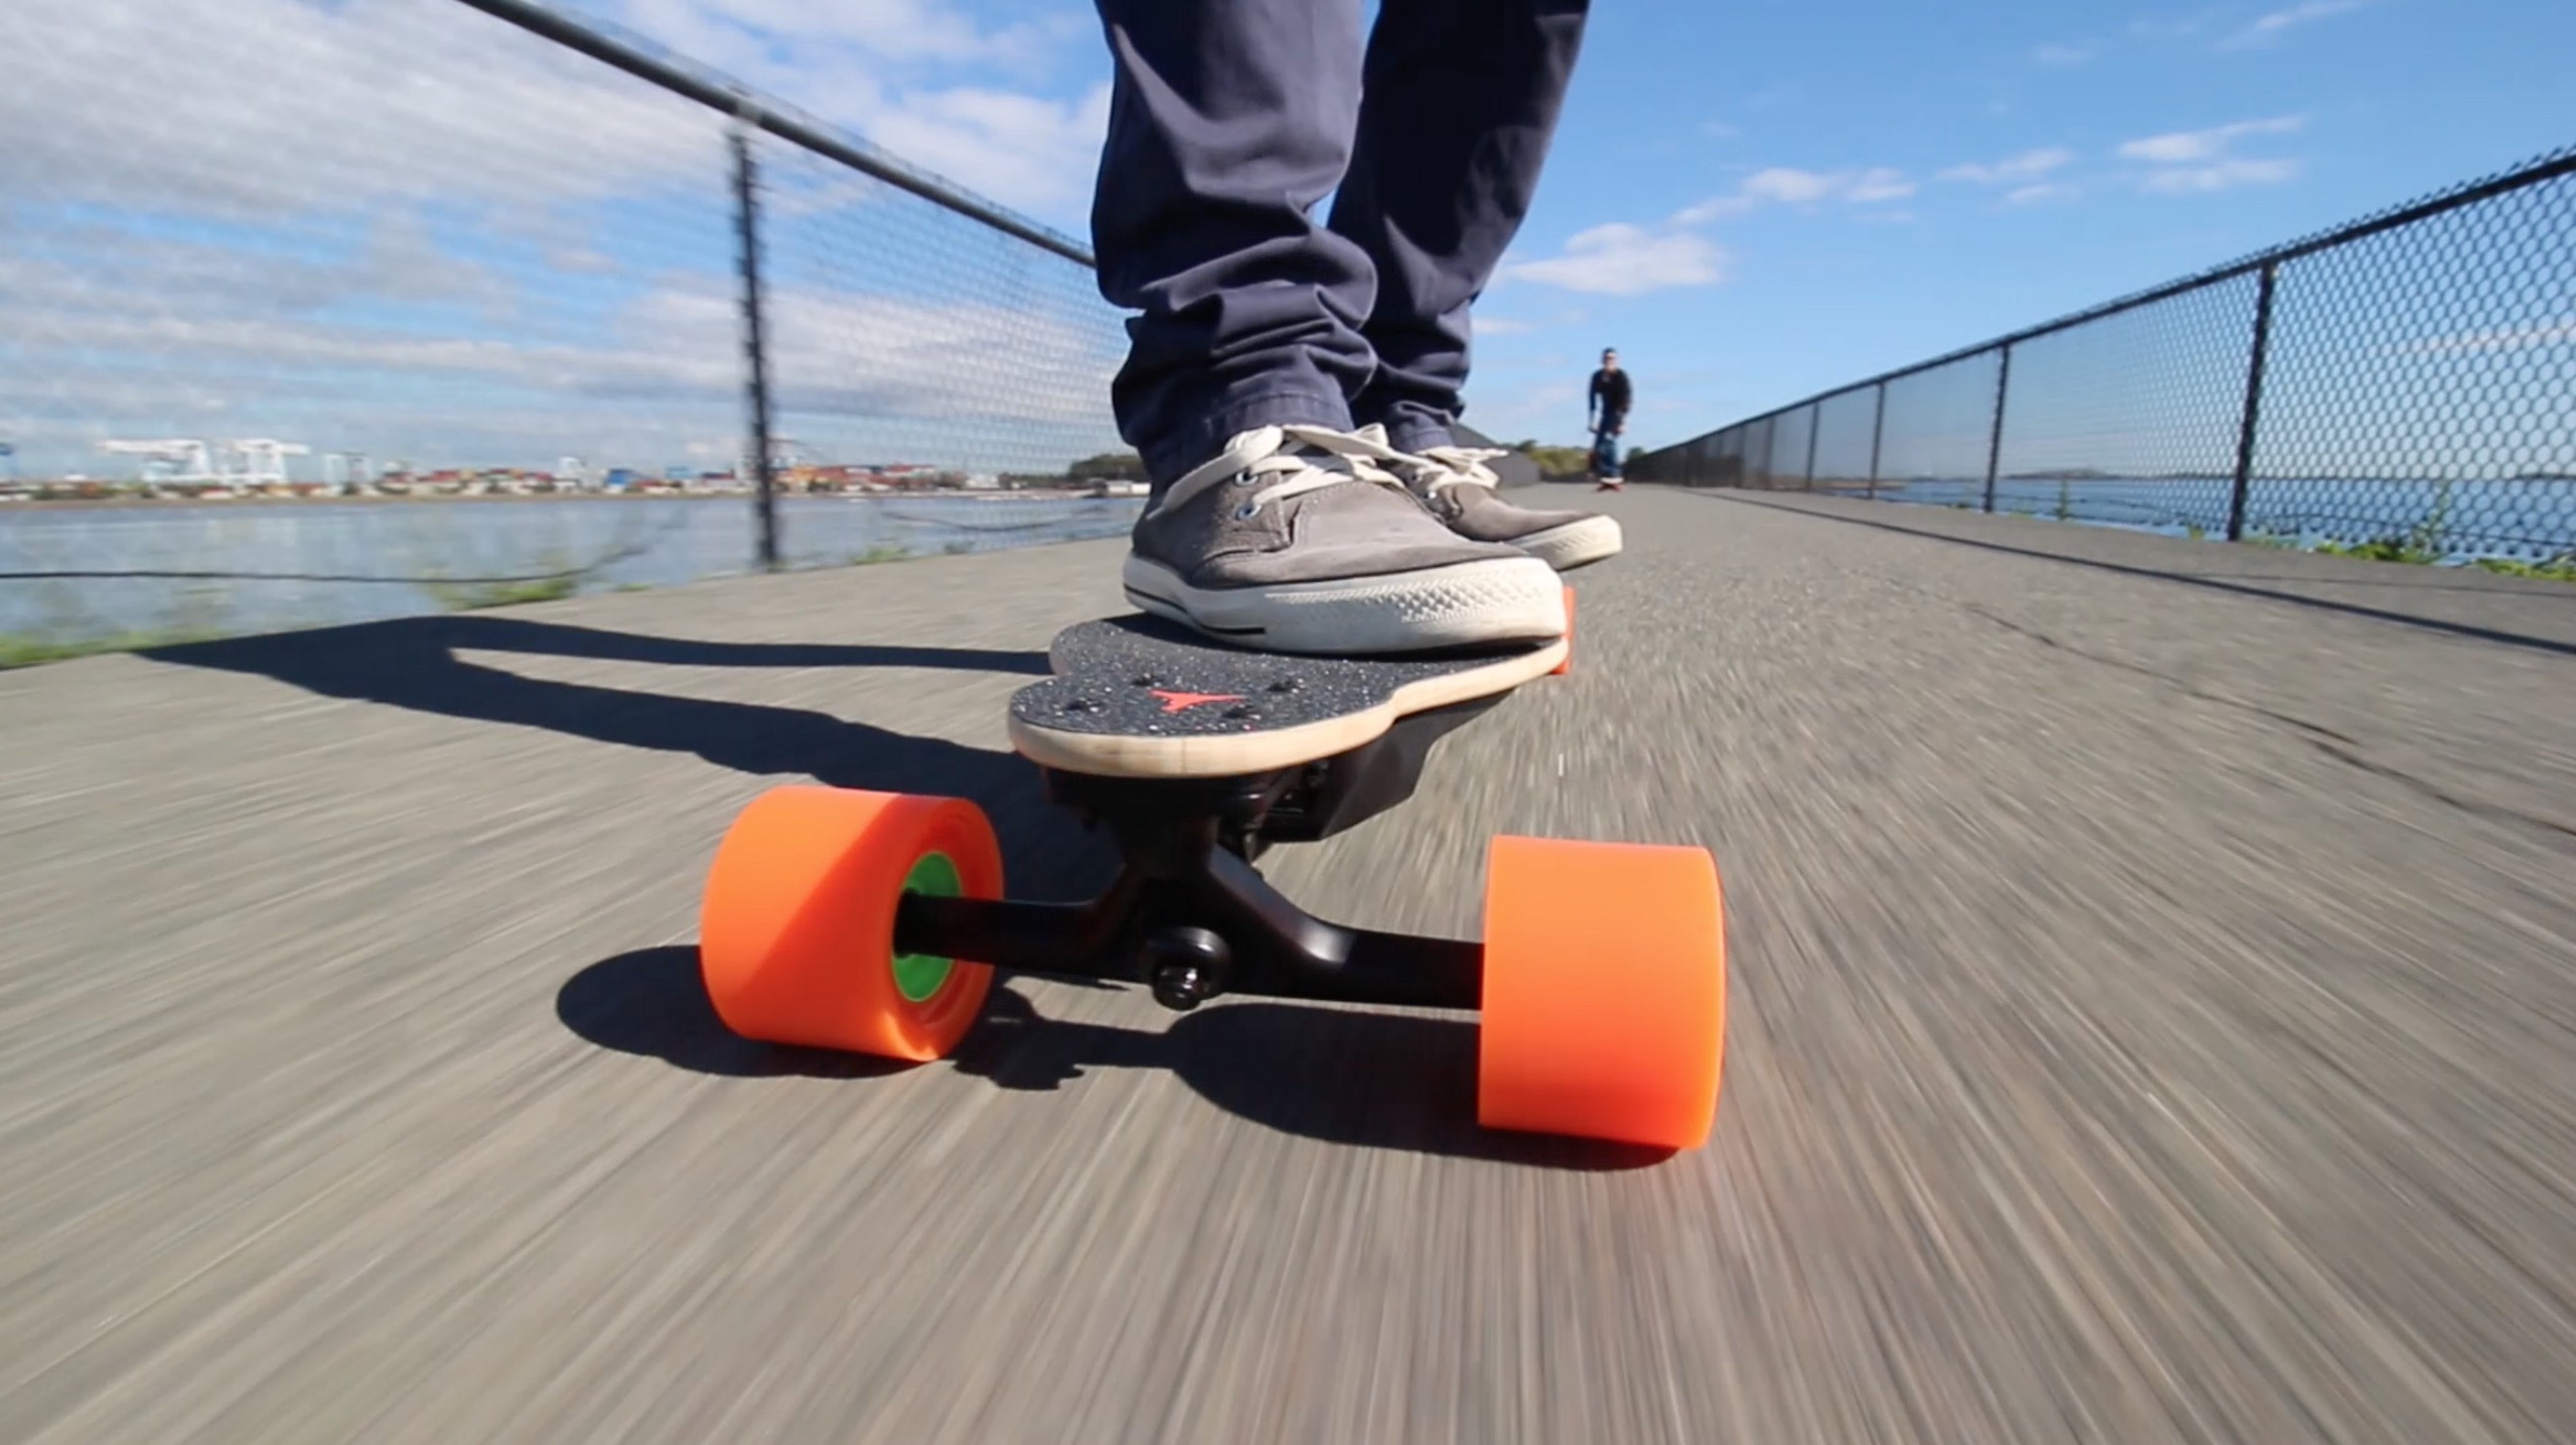 The Best Accessories for Boosted Board c2f41176d18ec